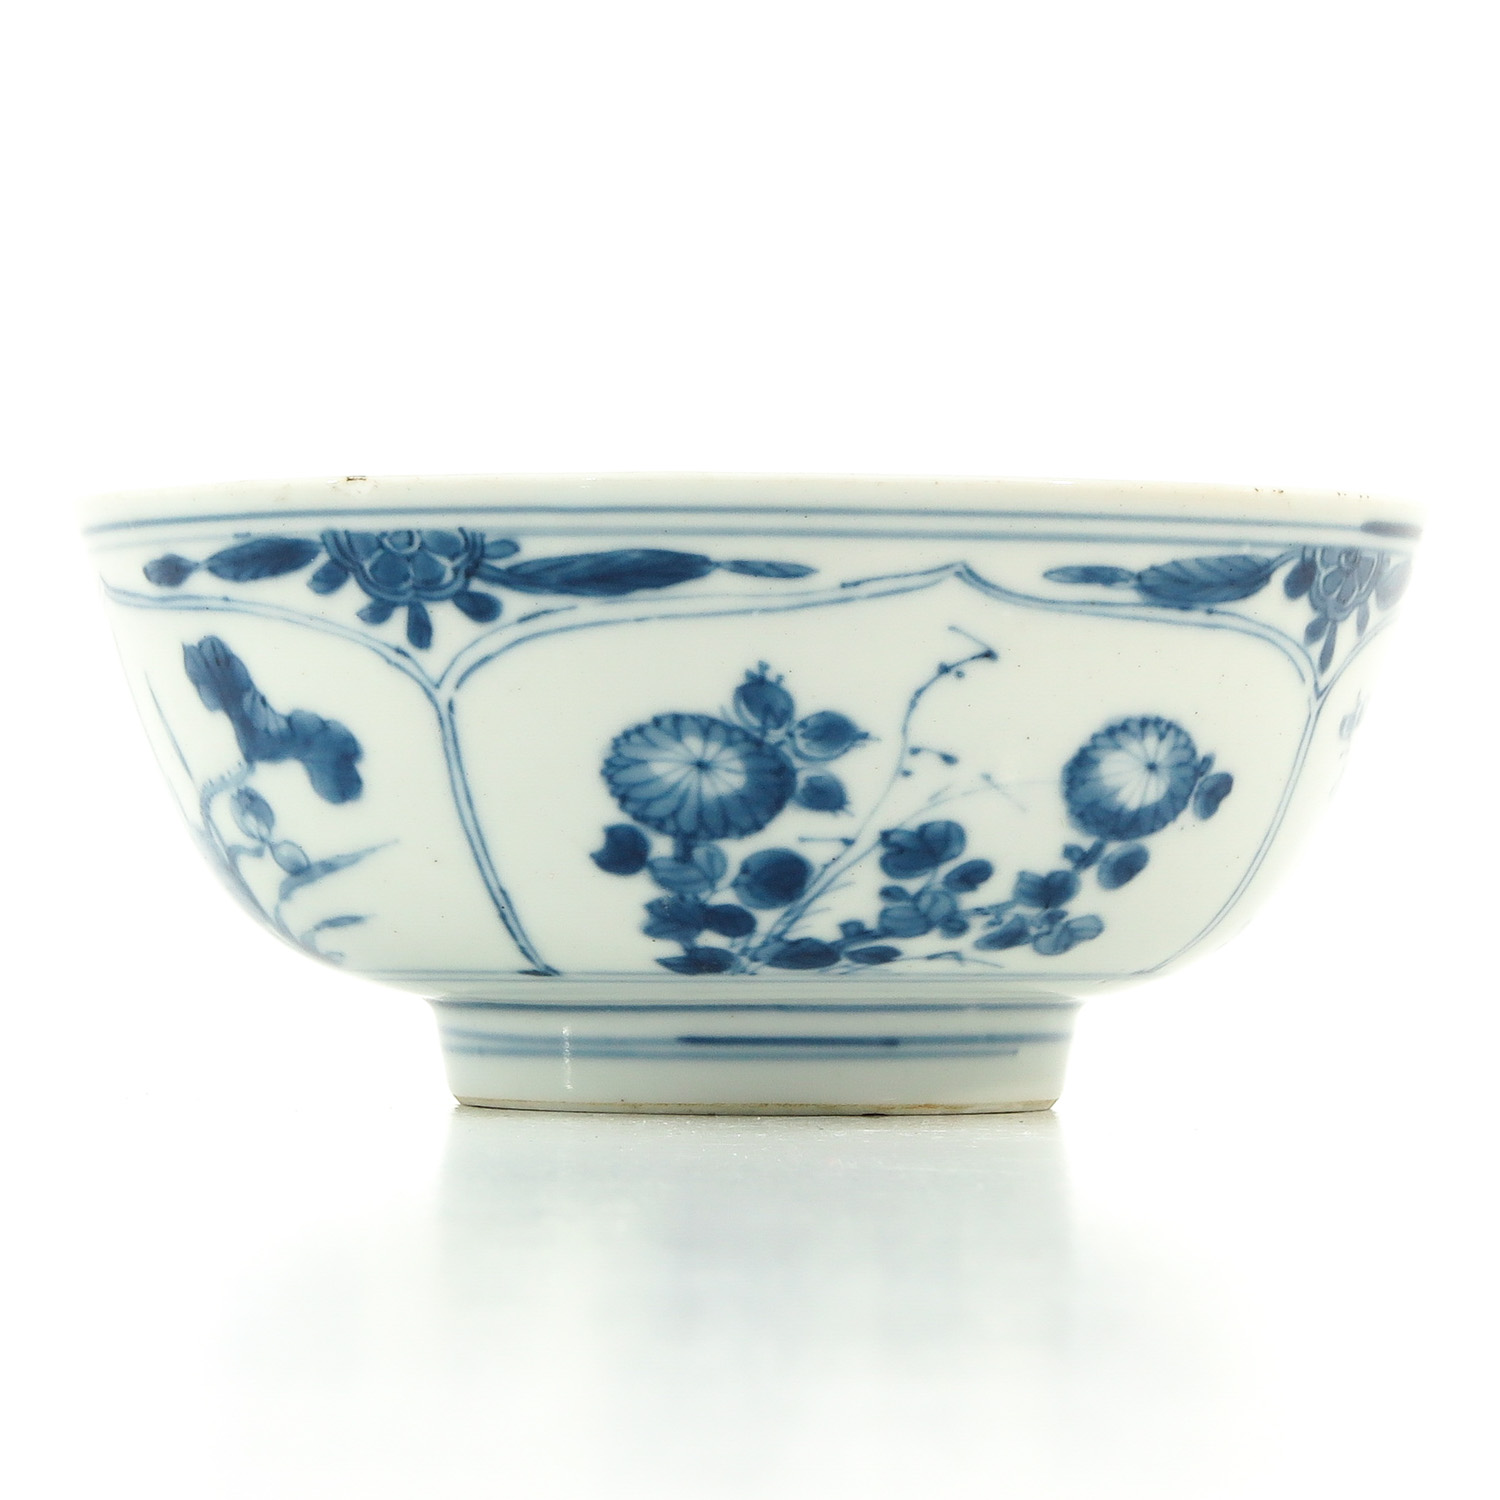 A Blue and White Bowl - Image 3 of 9